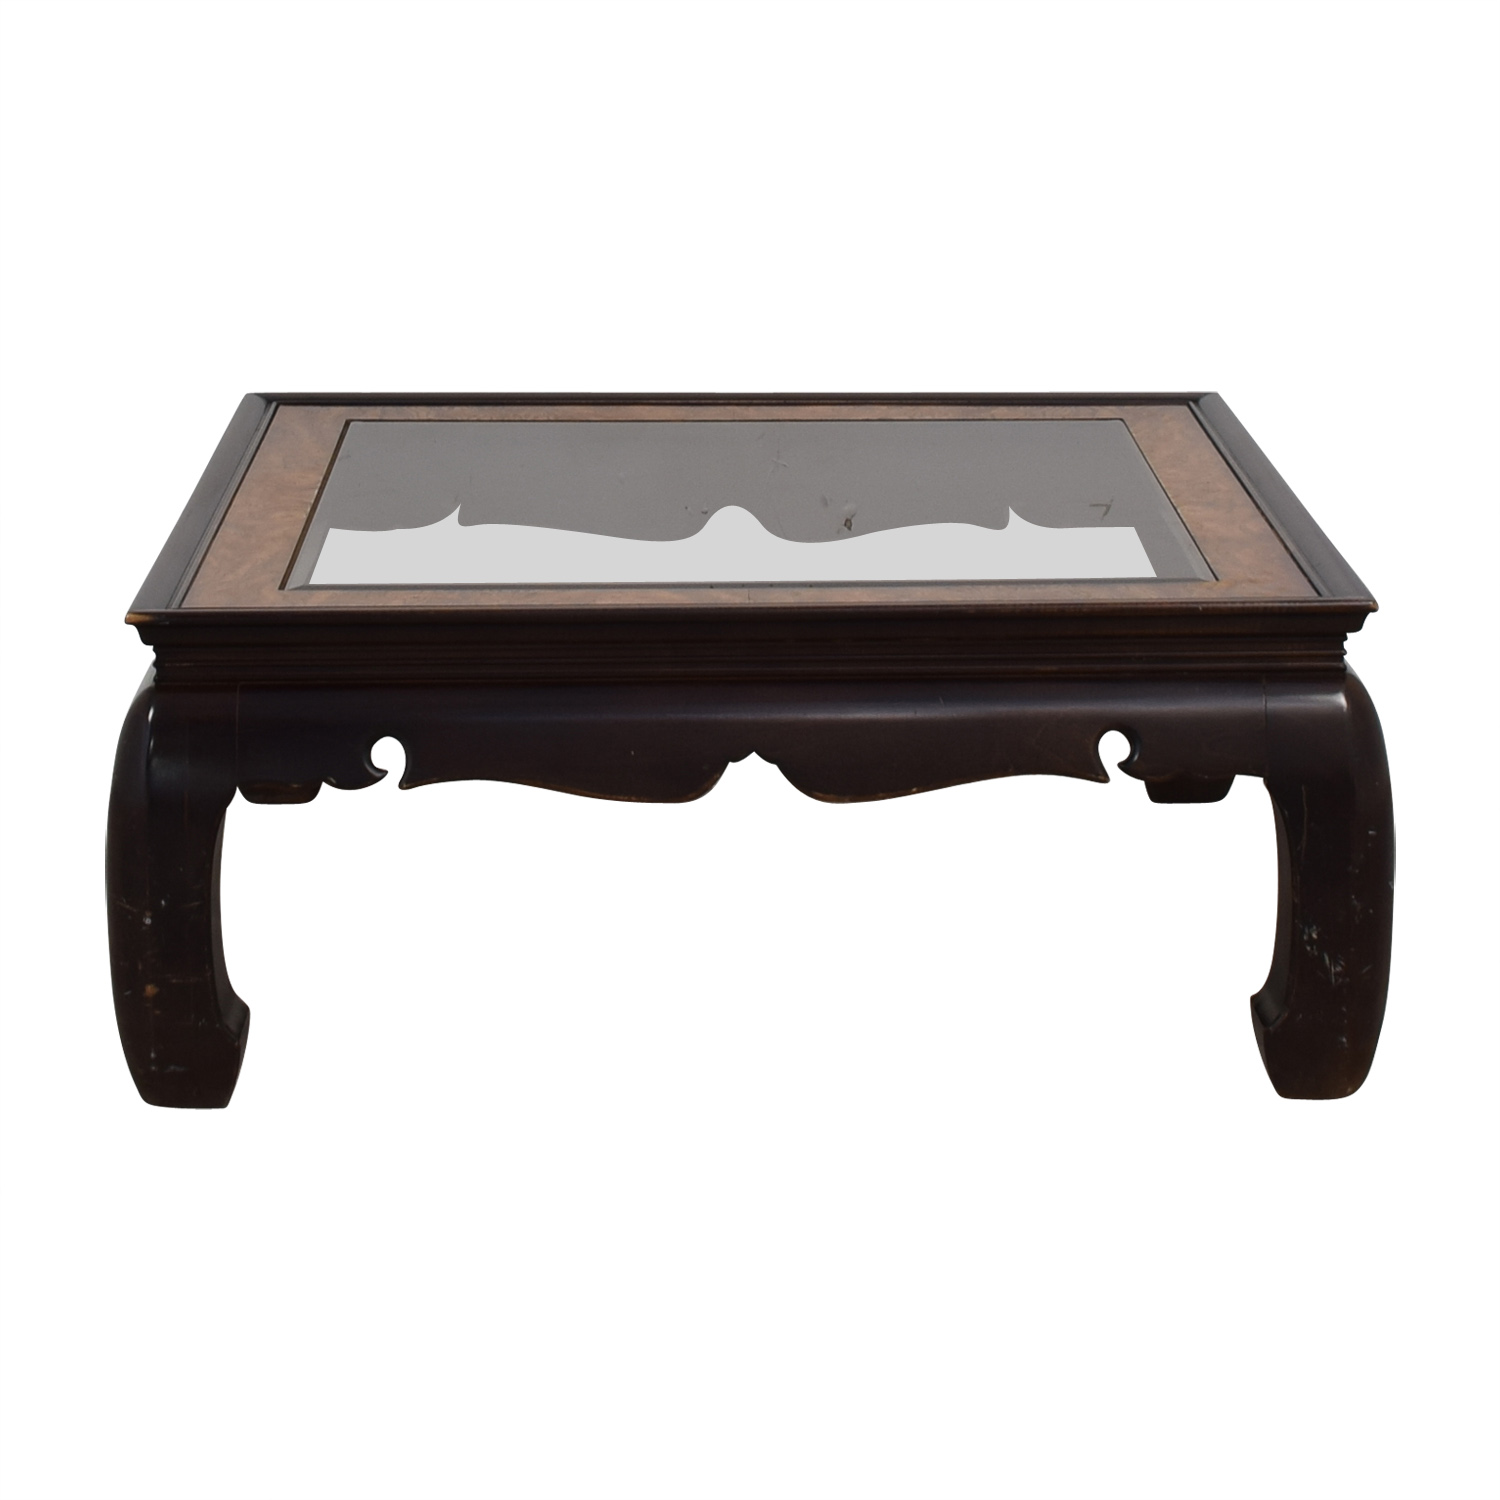 Square Glass and Wood Coffee Table for sale